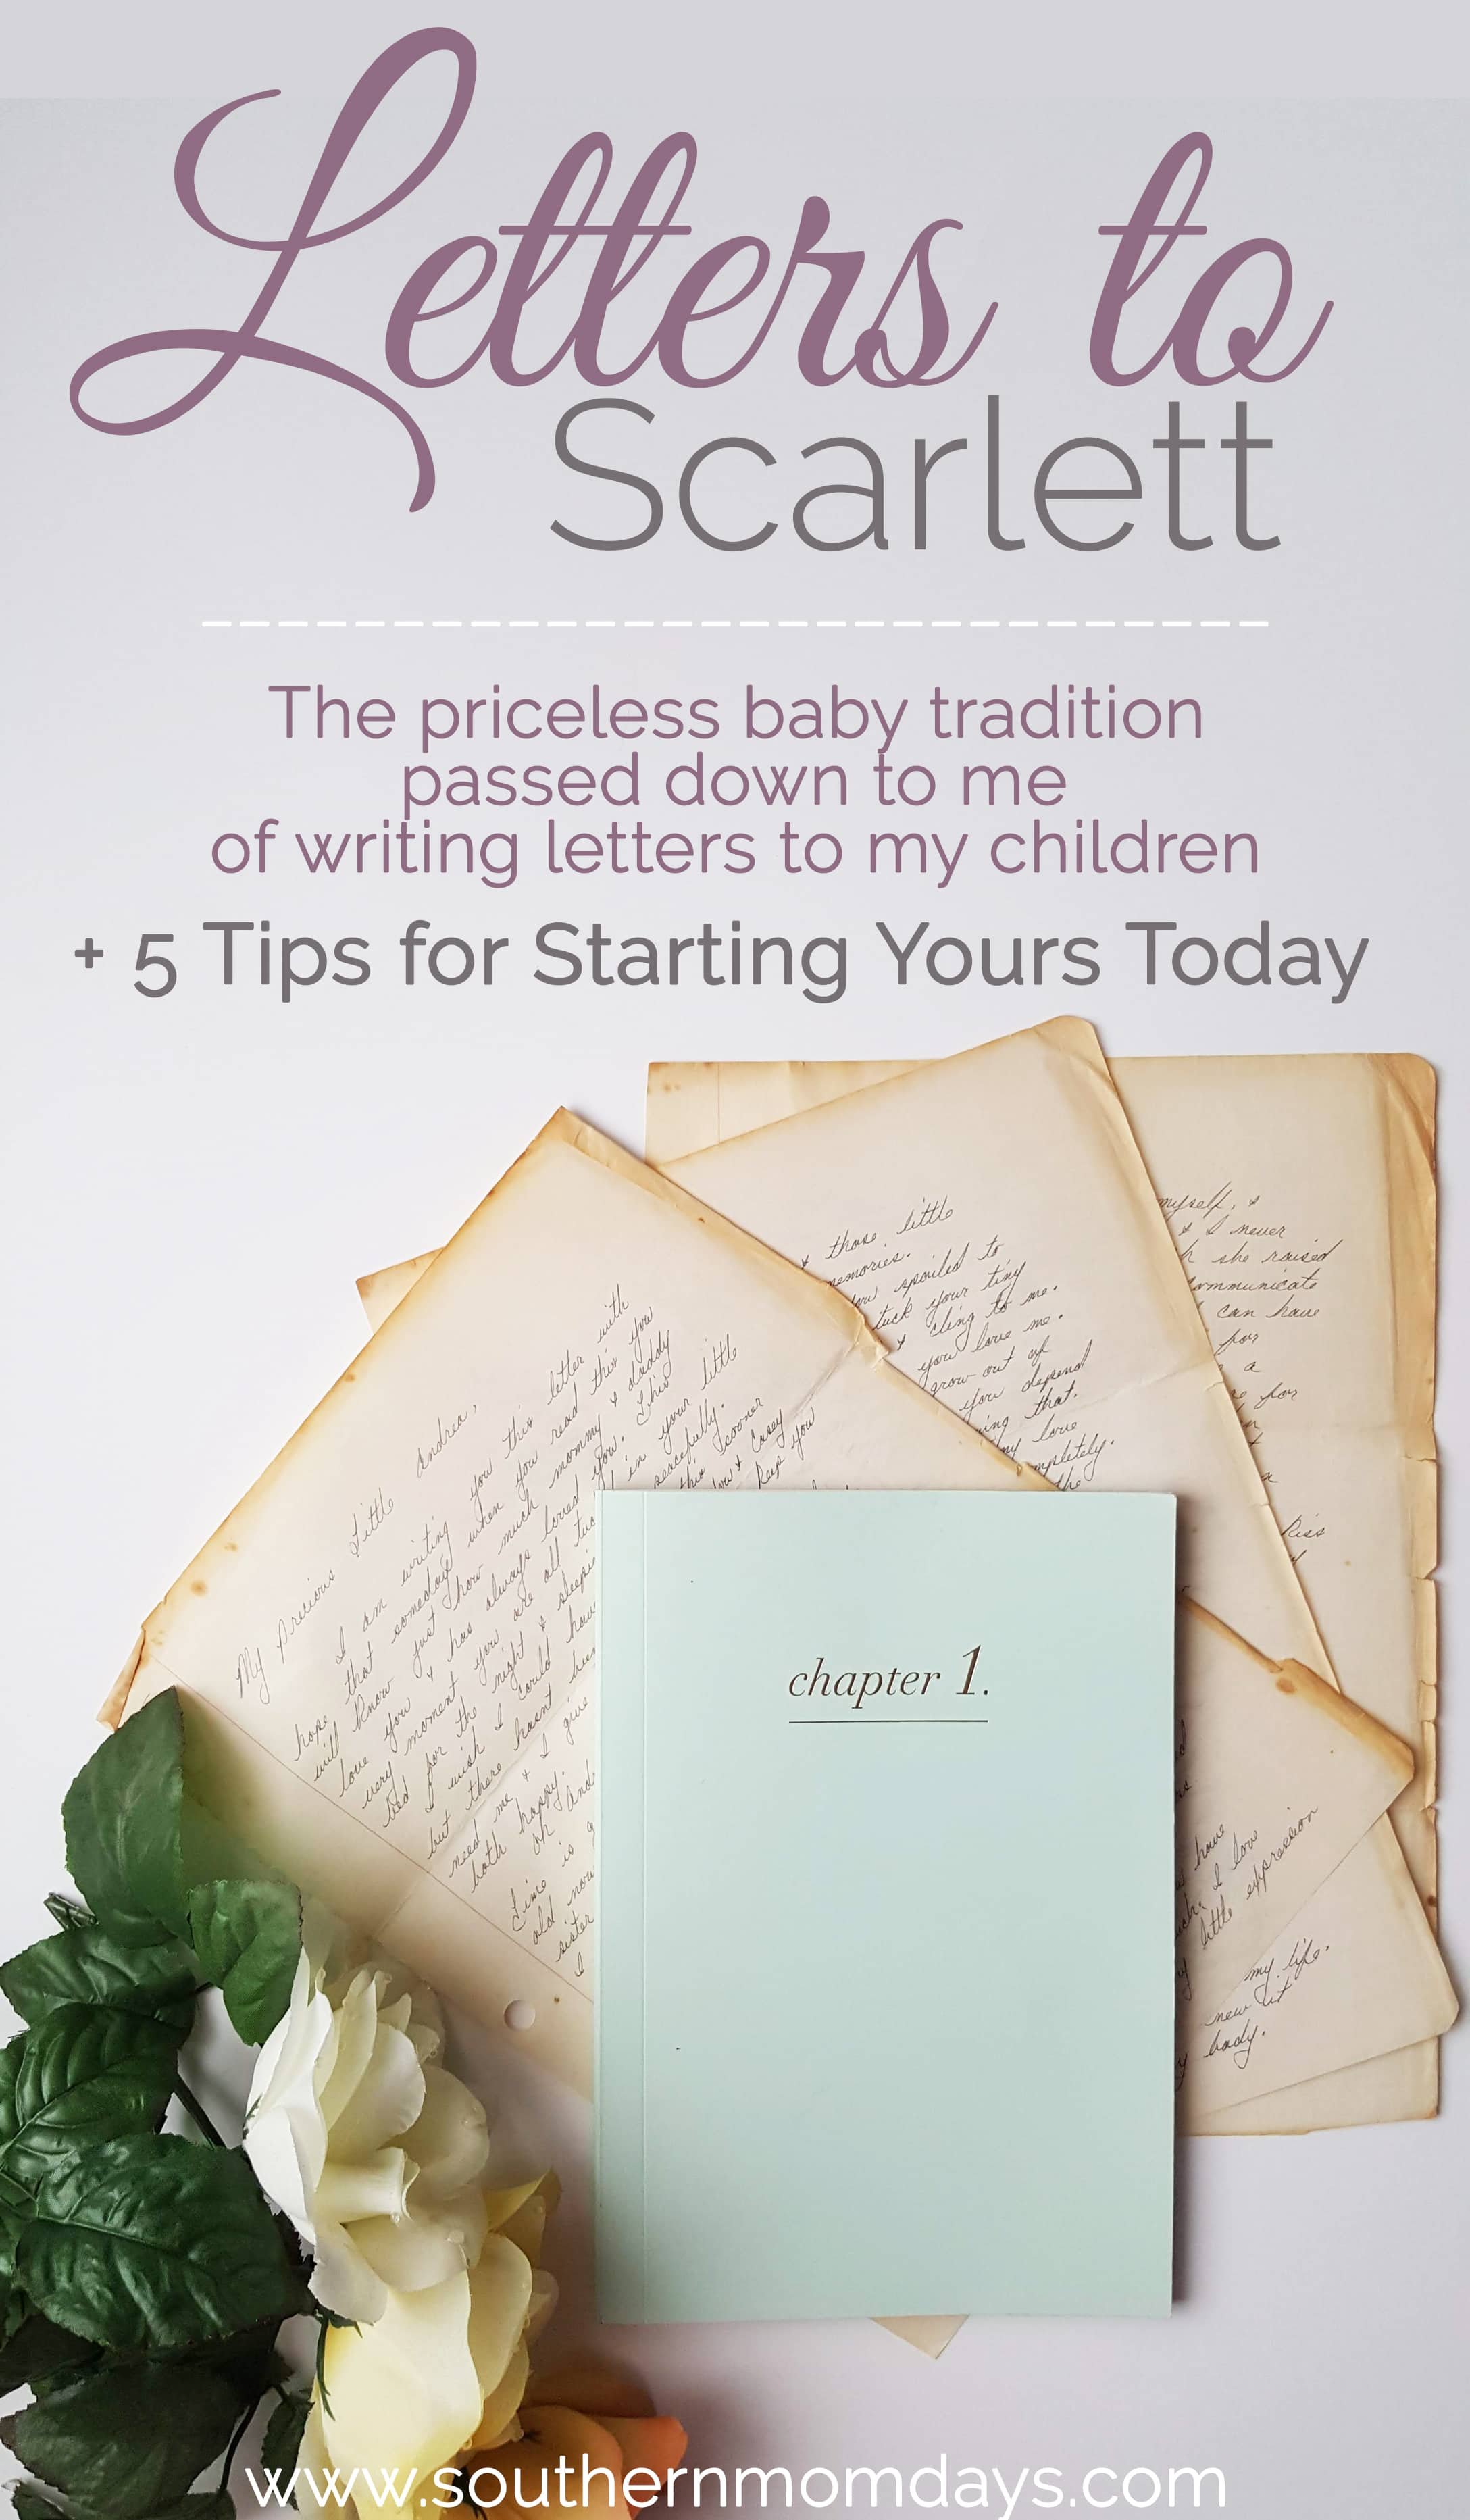 Sweet baby tradition of letters to children featured in Letters to Scarlett on the Southern Momdays blog